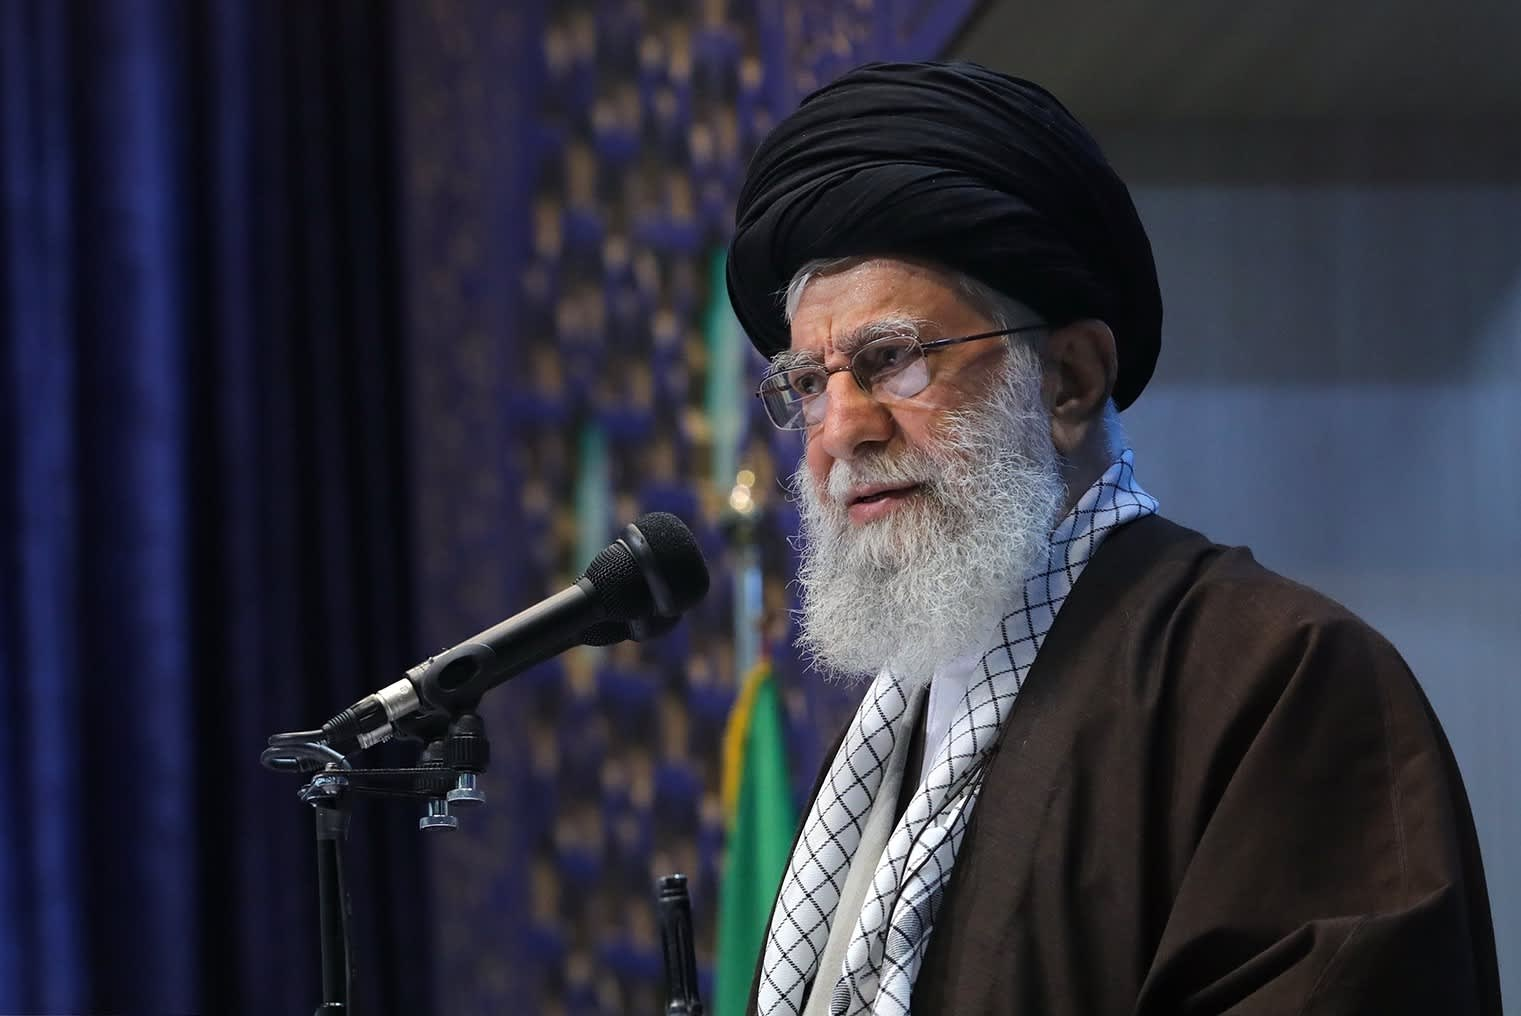 Iran's supreme leader calls Trump a 'clown' who will betray Iranians with a 'poisonous dagger'